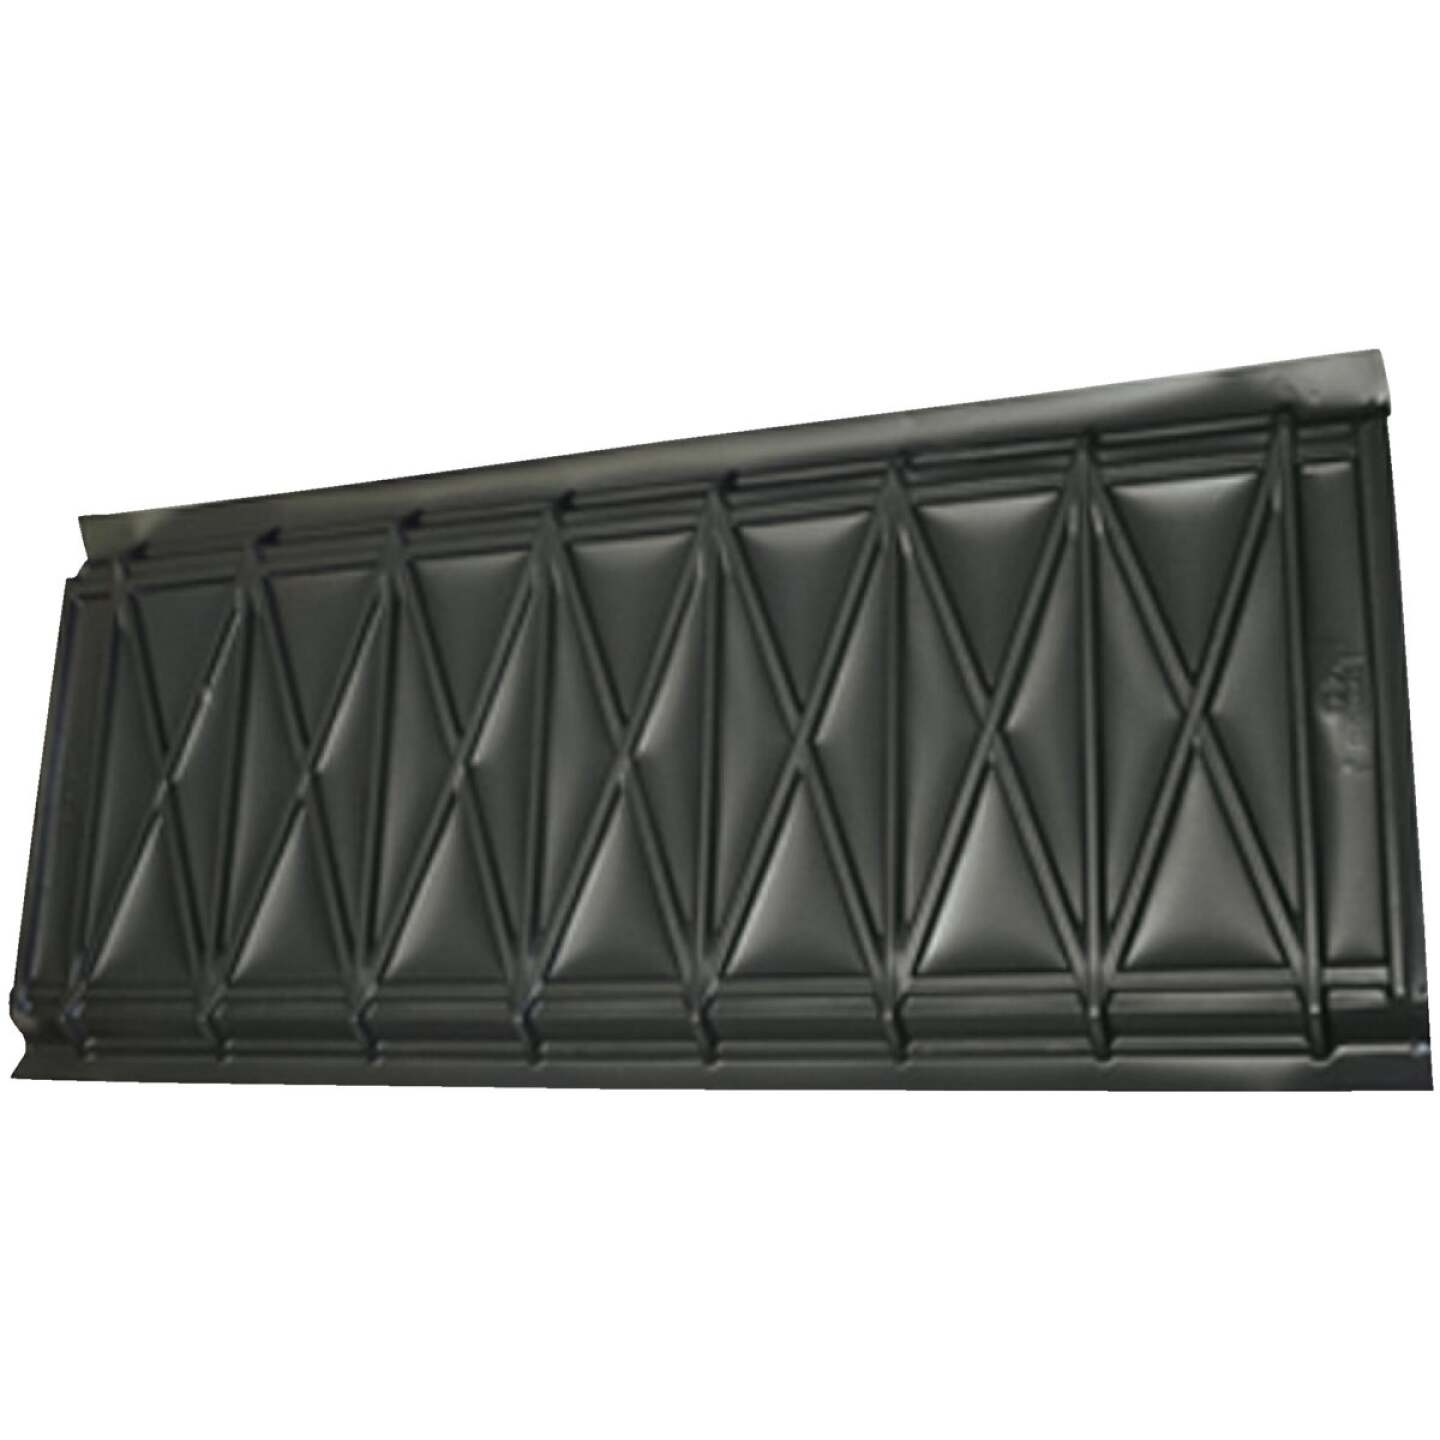 "ADO ProVent 22"" x 48"" High Impact Polystyrene ProVent Attic Rafter Vent Image 1"